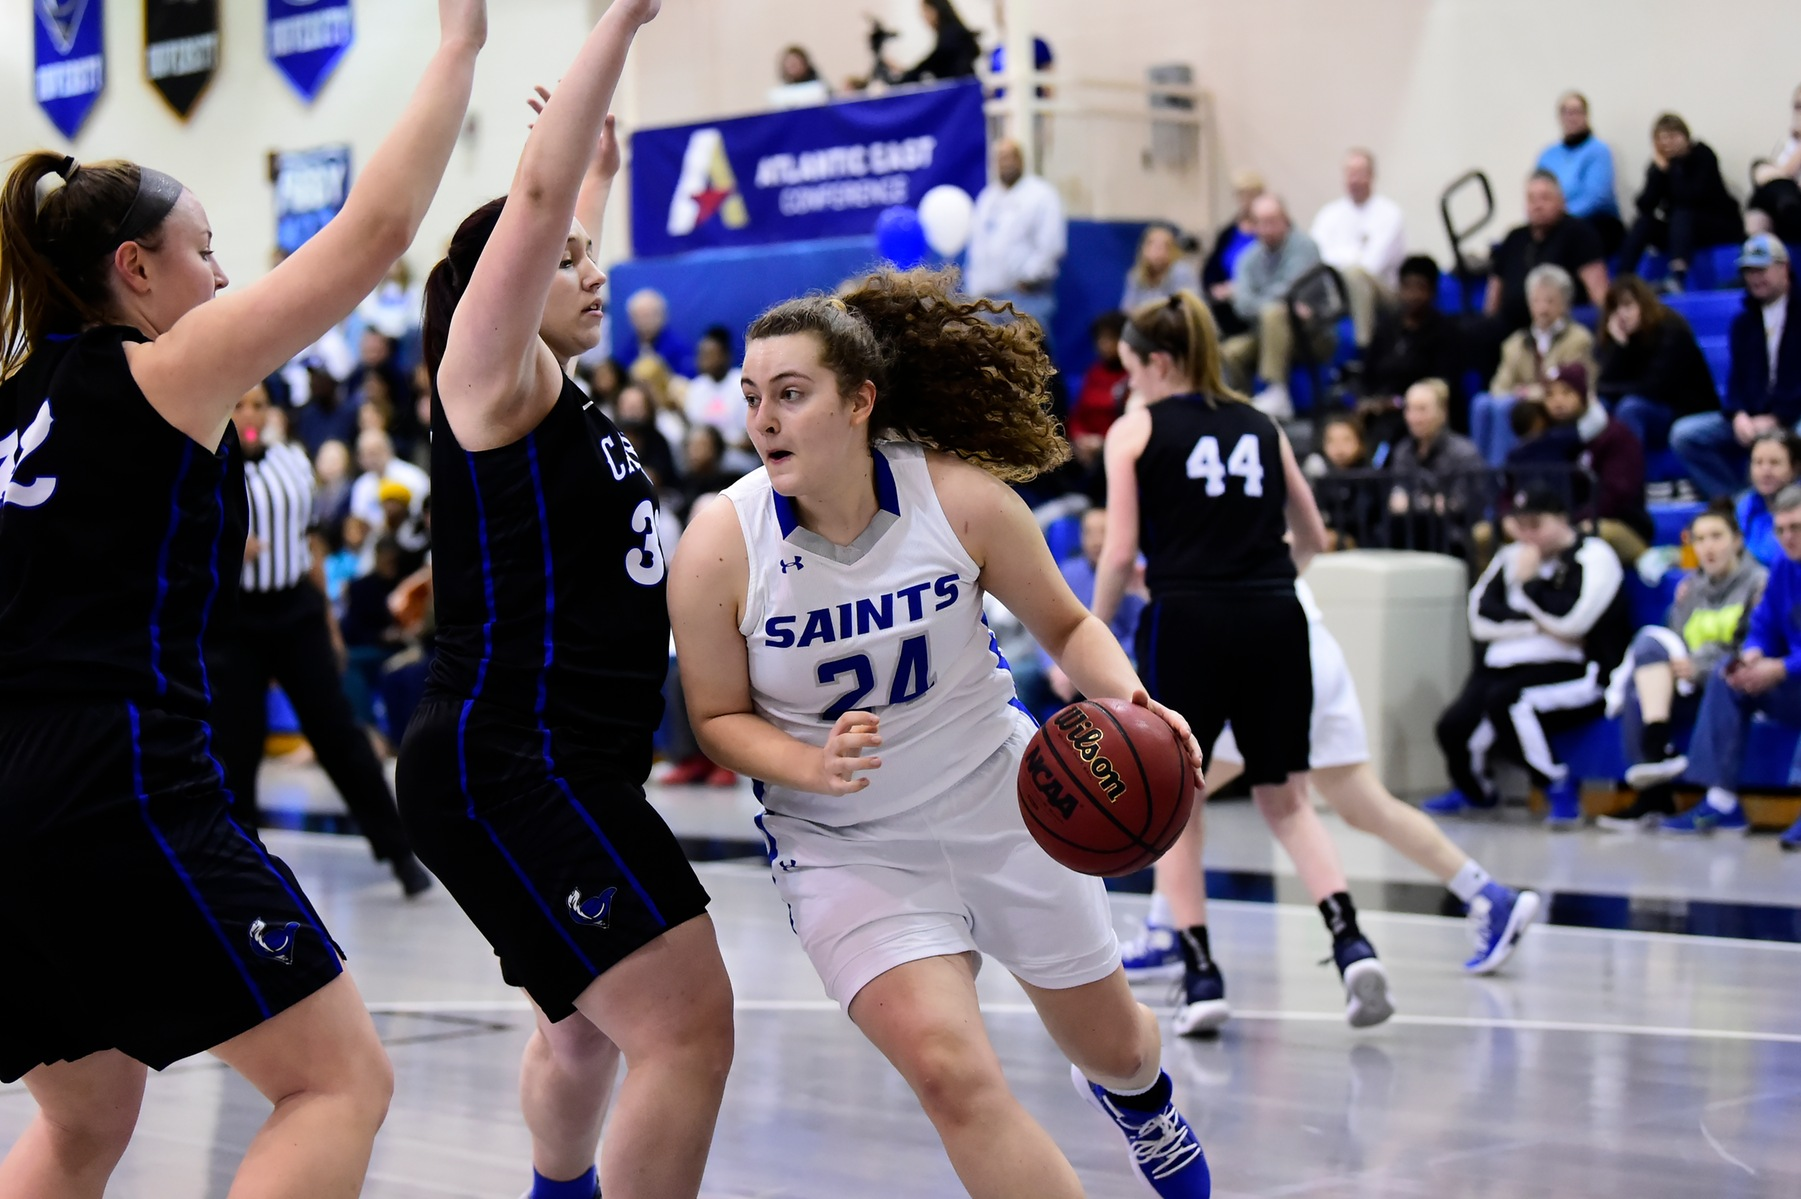 Saints take down Immaculata to advance to Atlantic East championship